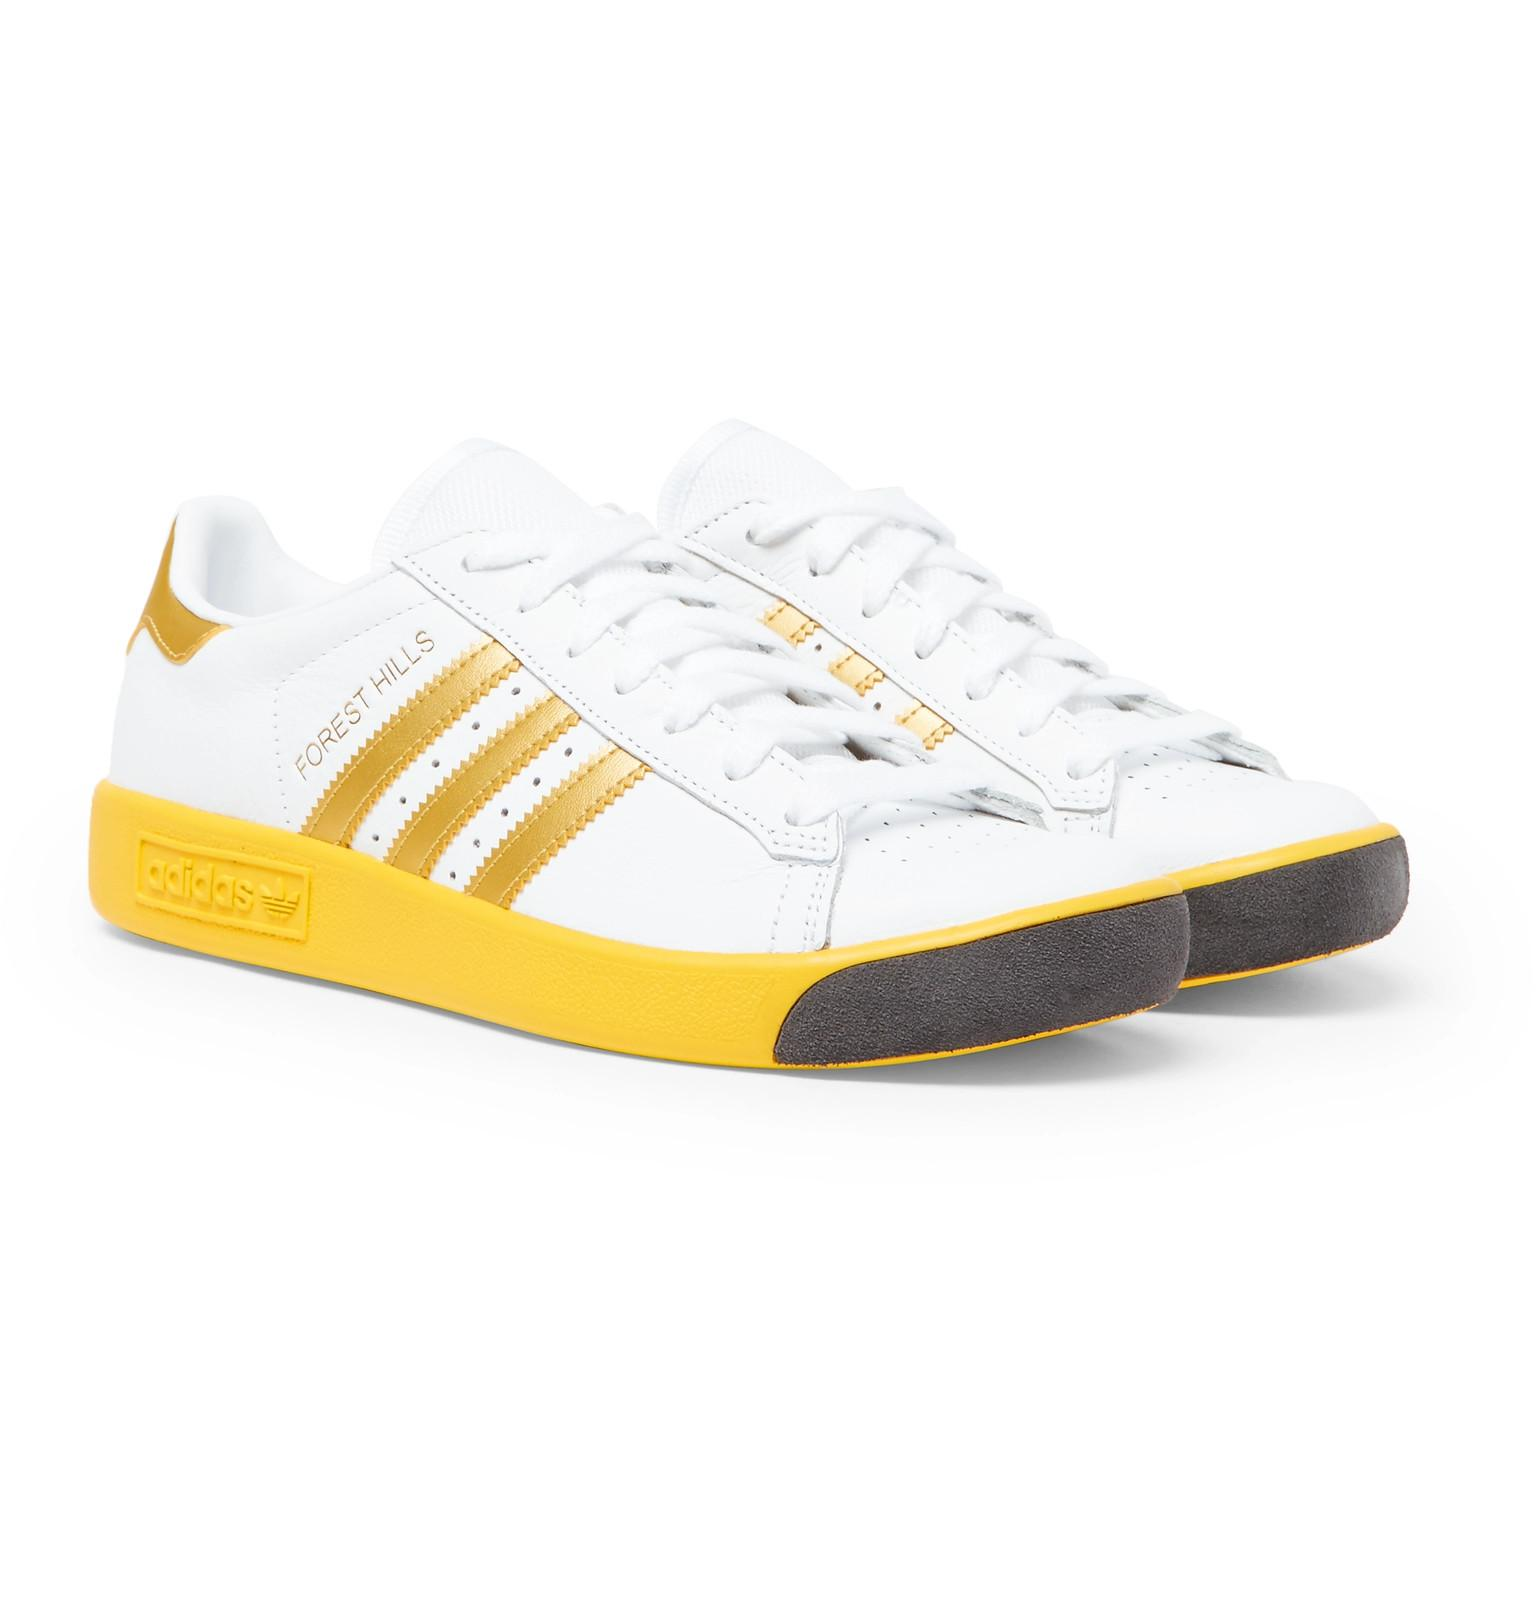 e5c704f36aaeb ... cheap adidas originals. mens white forest hills leather and mesh  trainers eca8f 16923